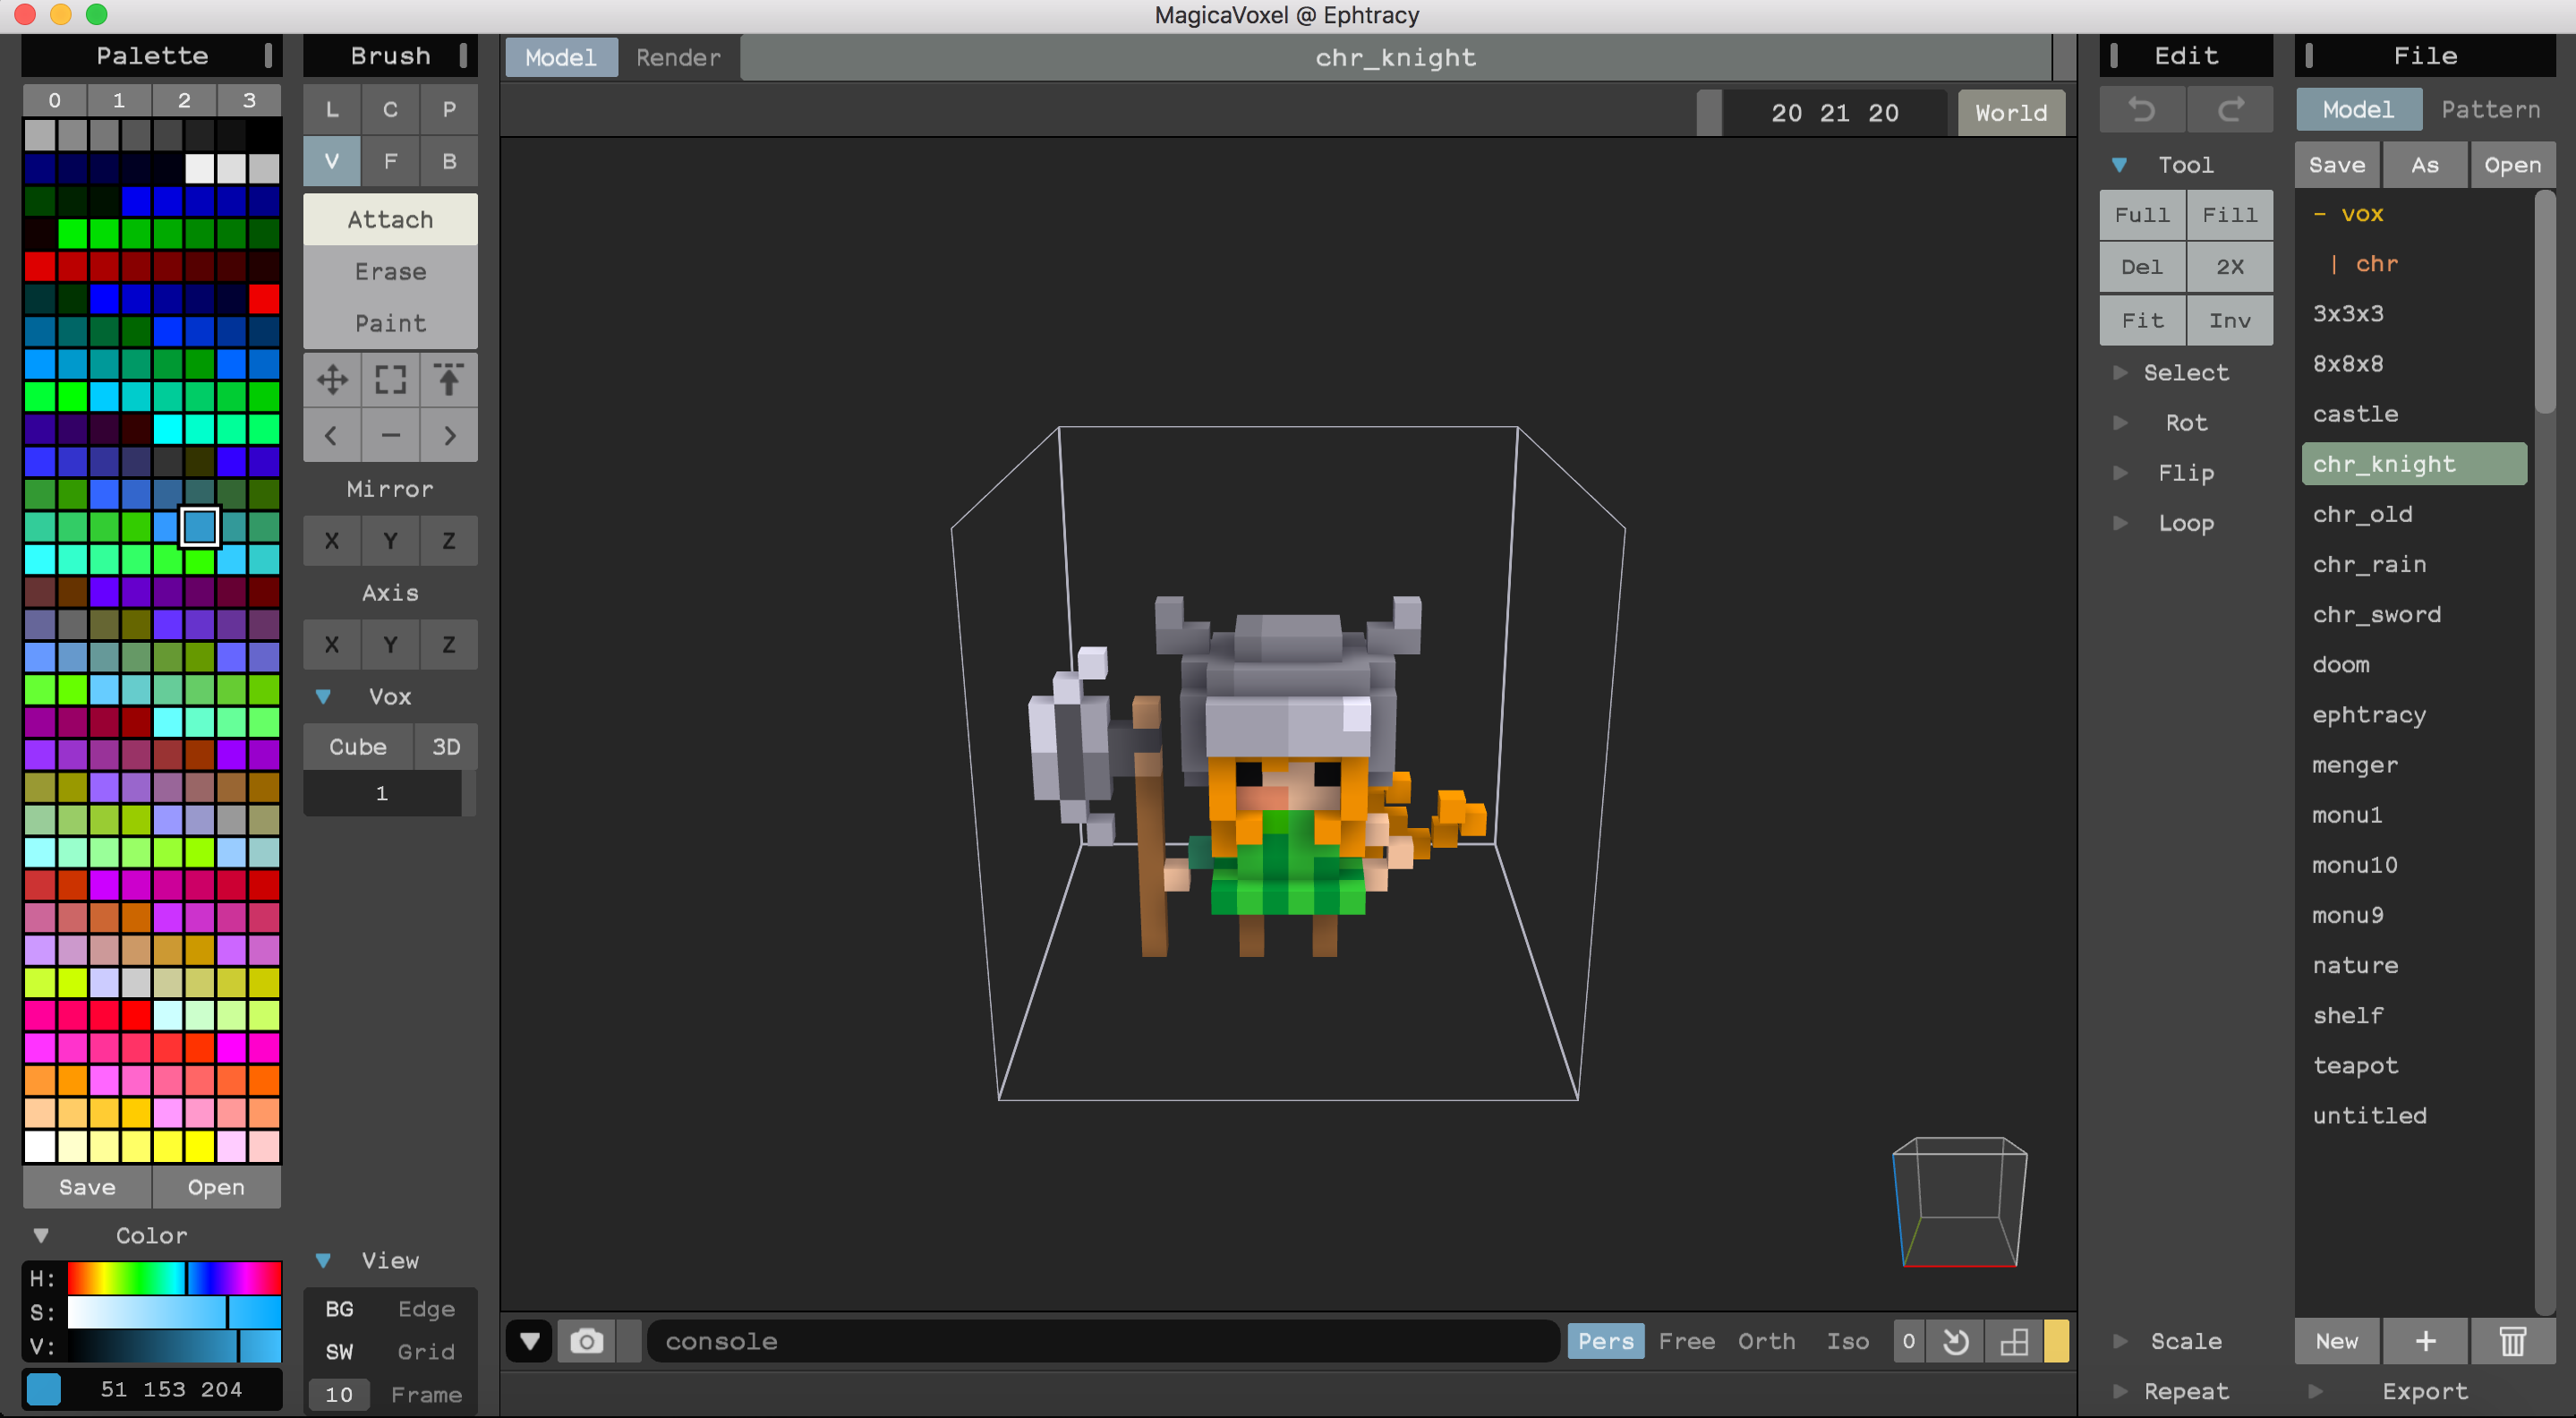 MagicaVoxel for Mac